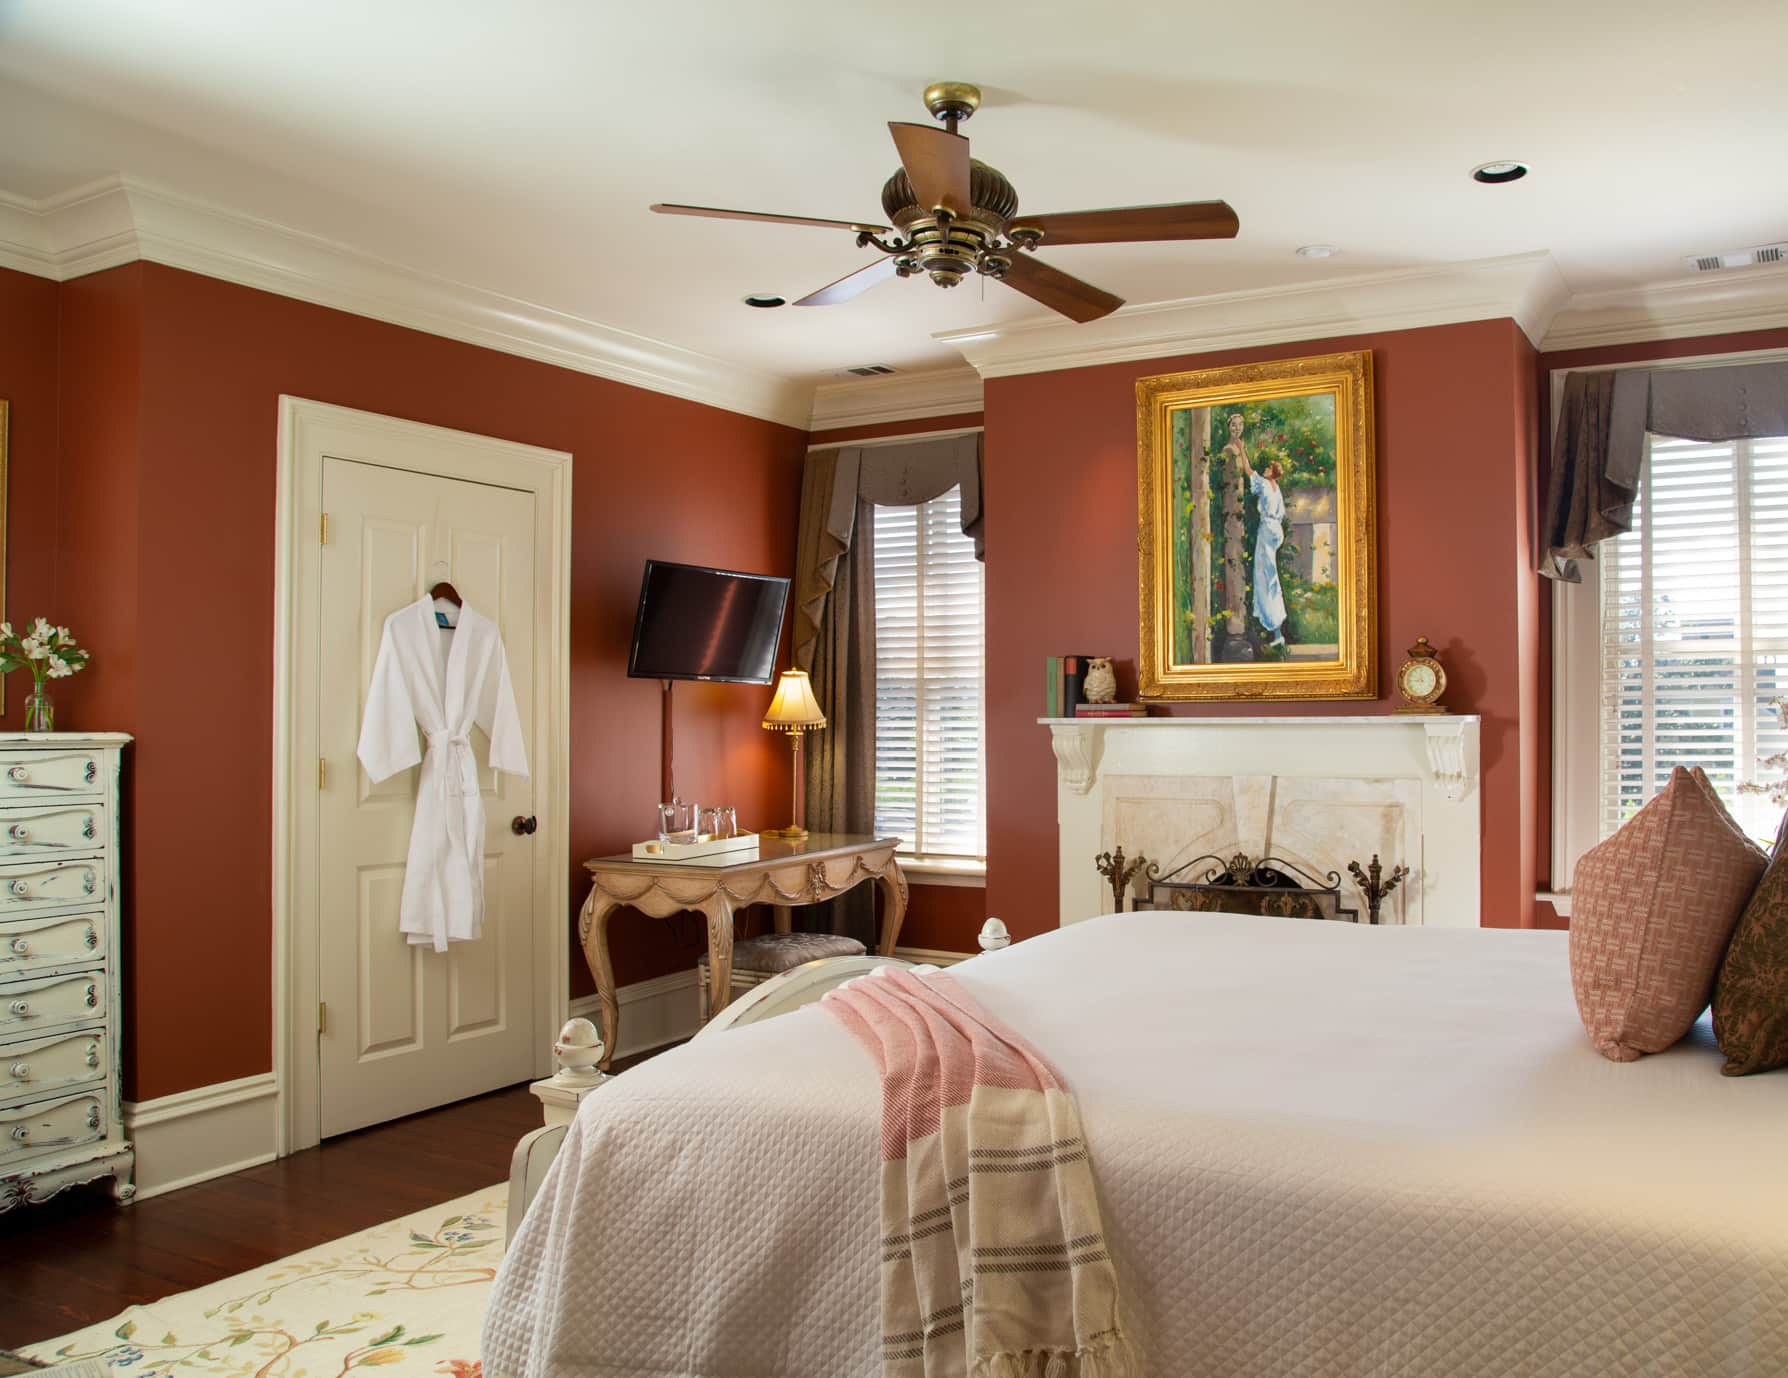 King bed in a room with a fireplace, ceiling fan, and large windows